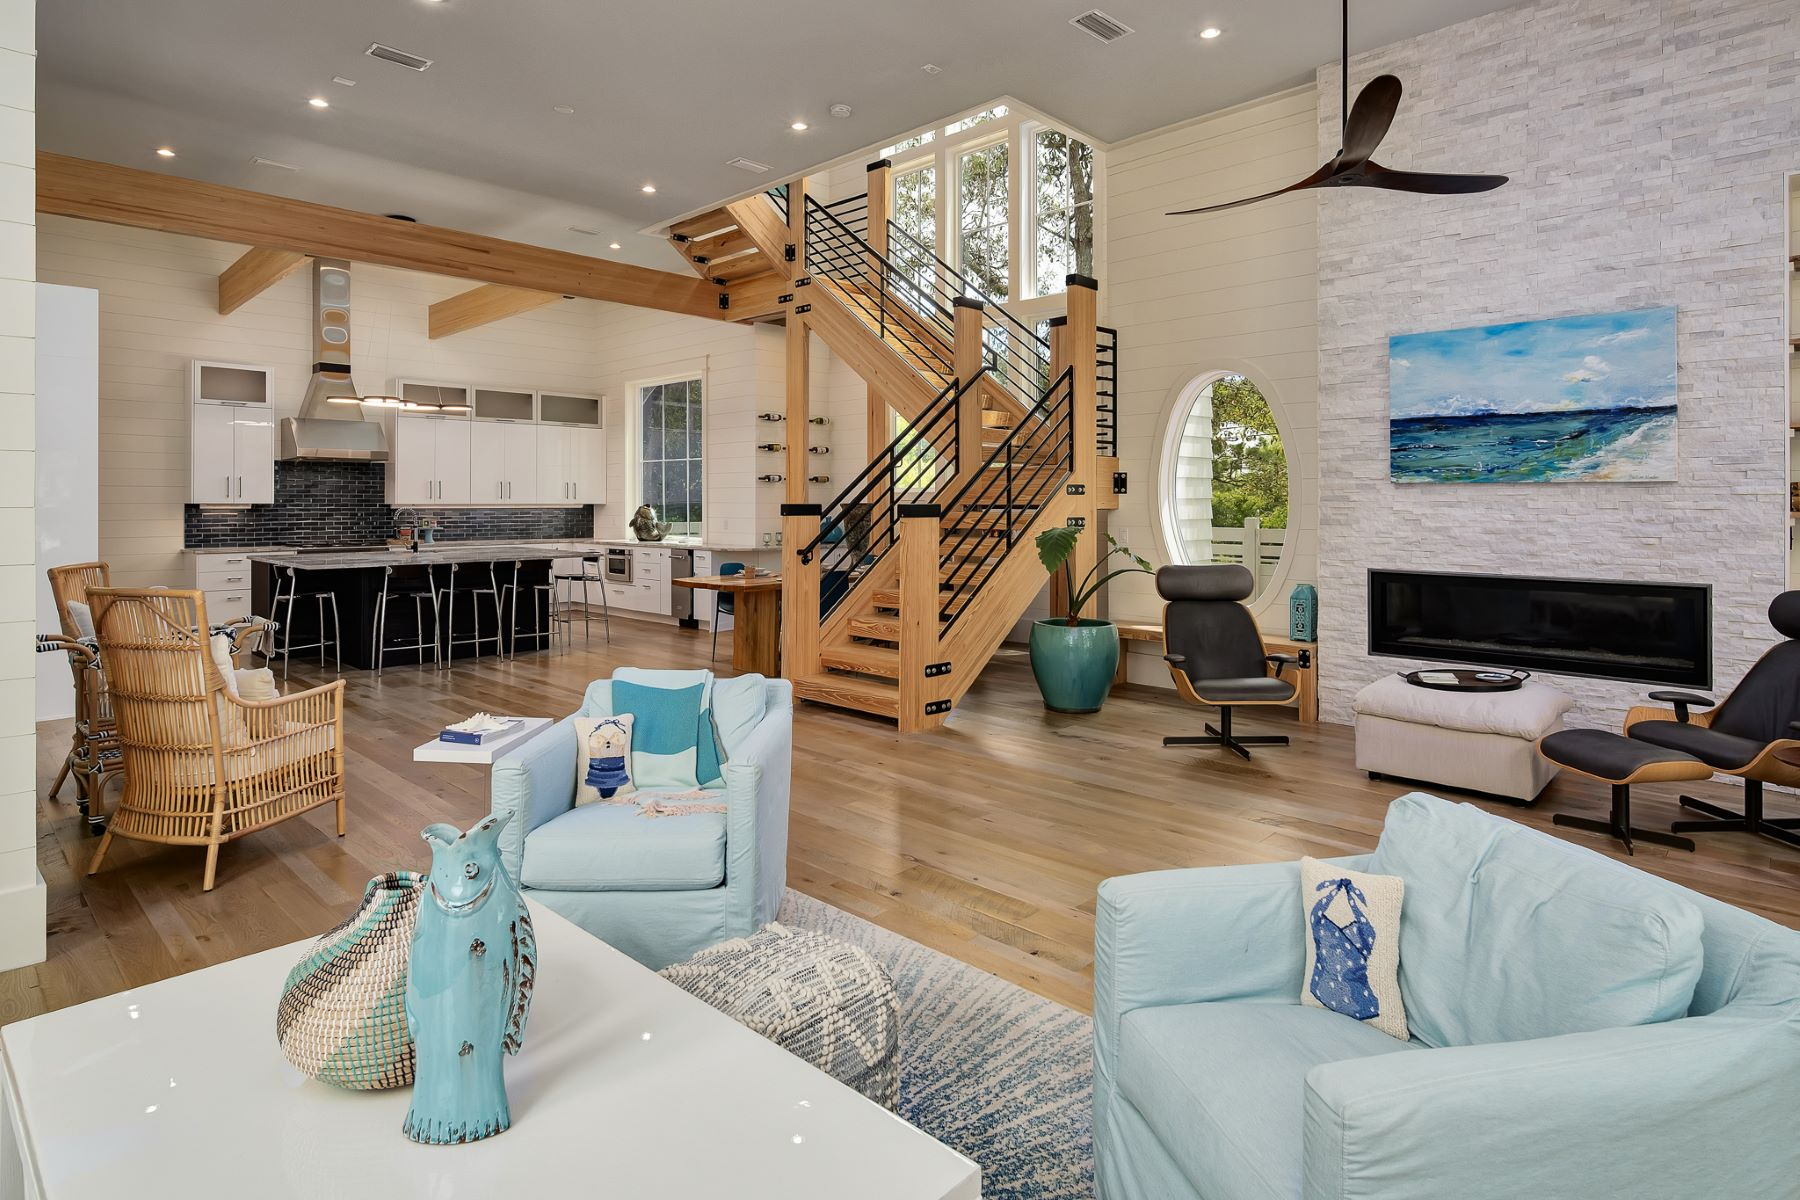 Property for Sale at Coastal Contemporary Living in Custom Built Home With Pool 12 Canal Street, Santa Rosa Beach, Florida 32459 United States